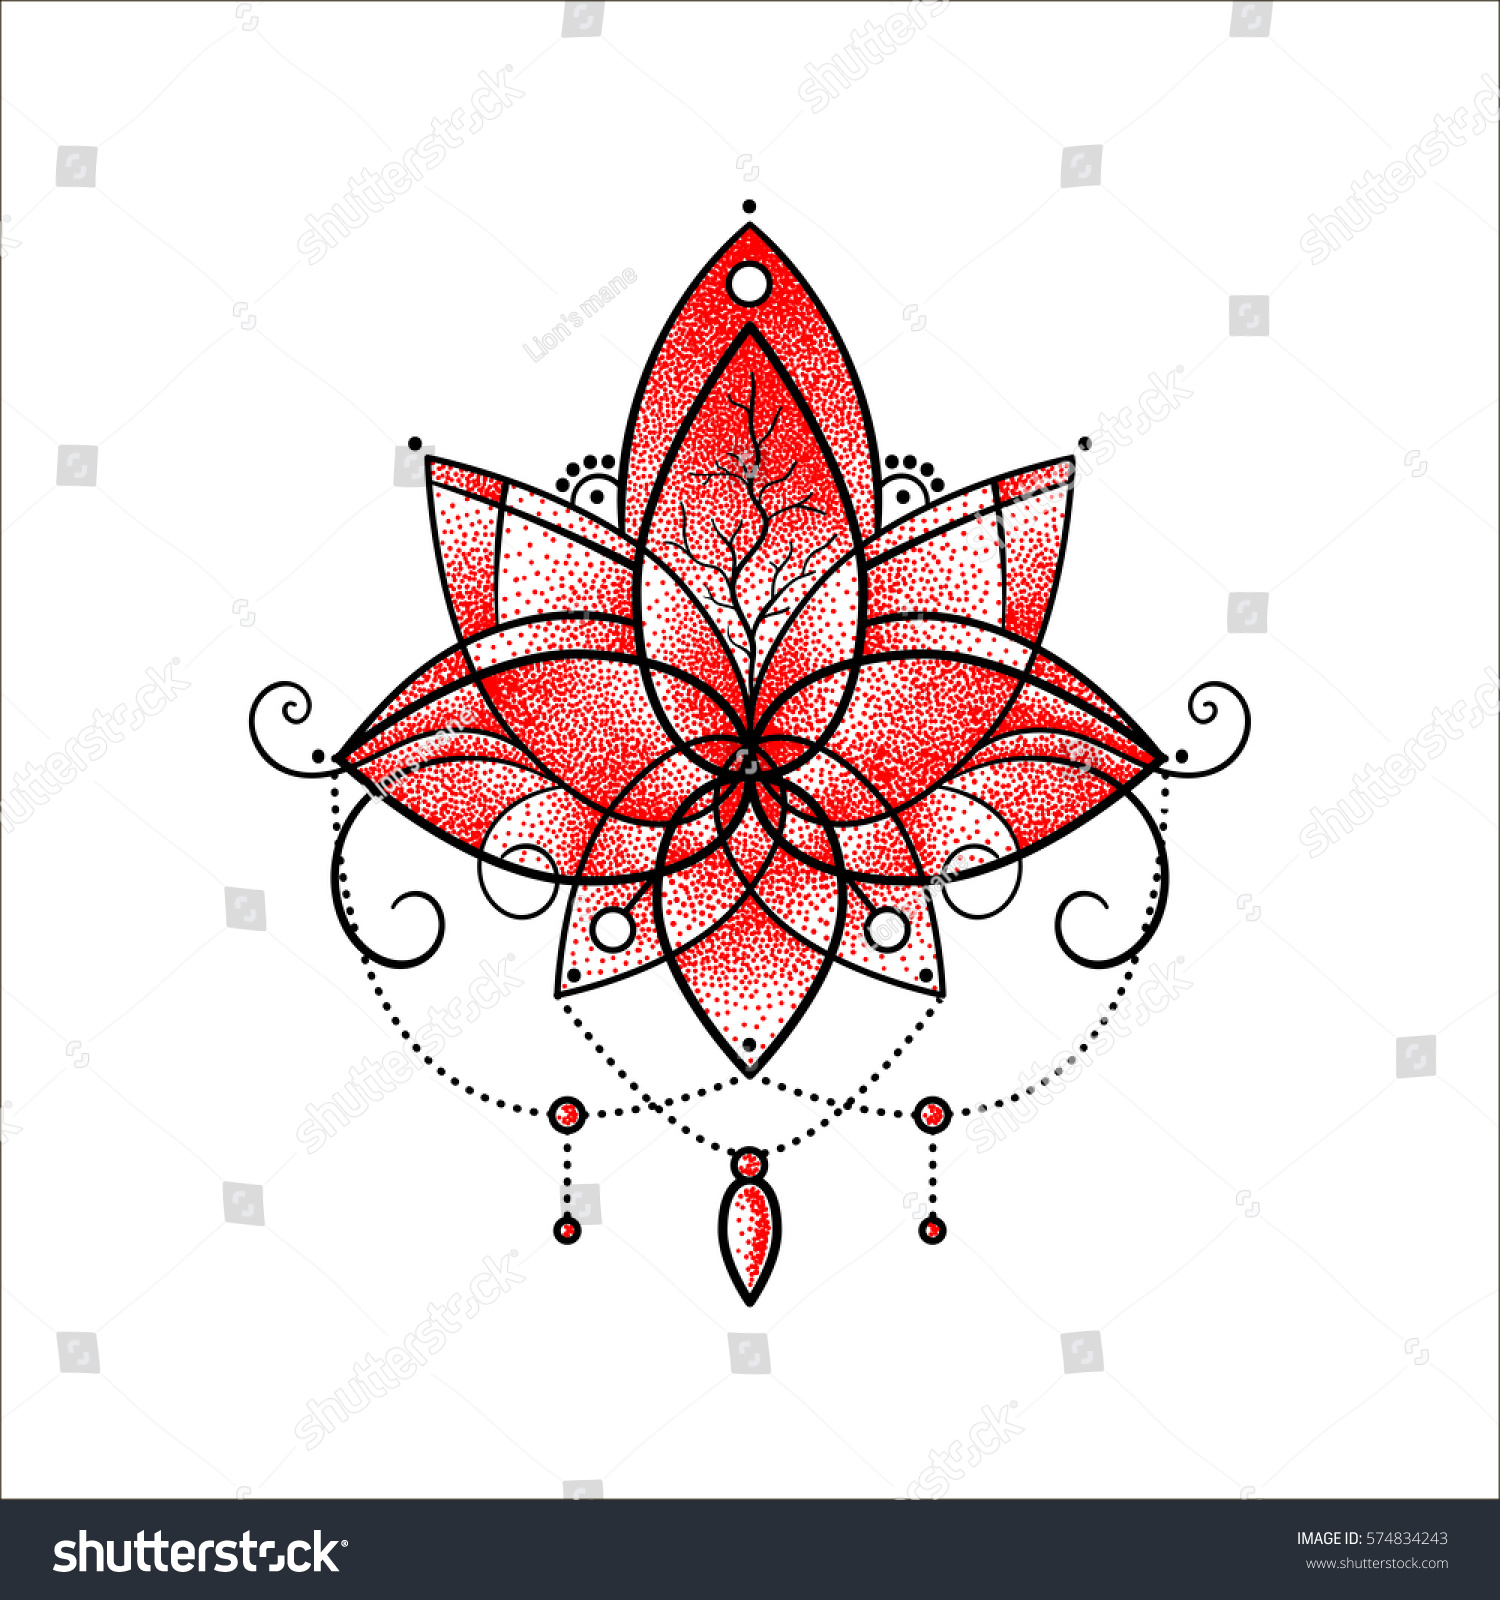 Vector Ornamental Lotus Flower Ethnic Art Stock Vector 574834243 ...